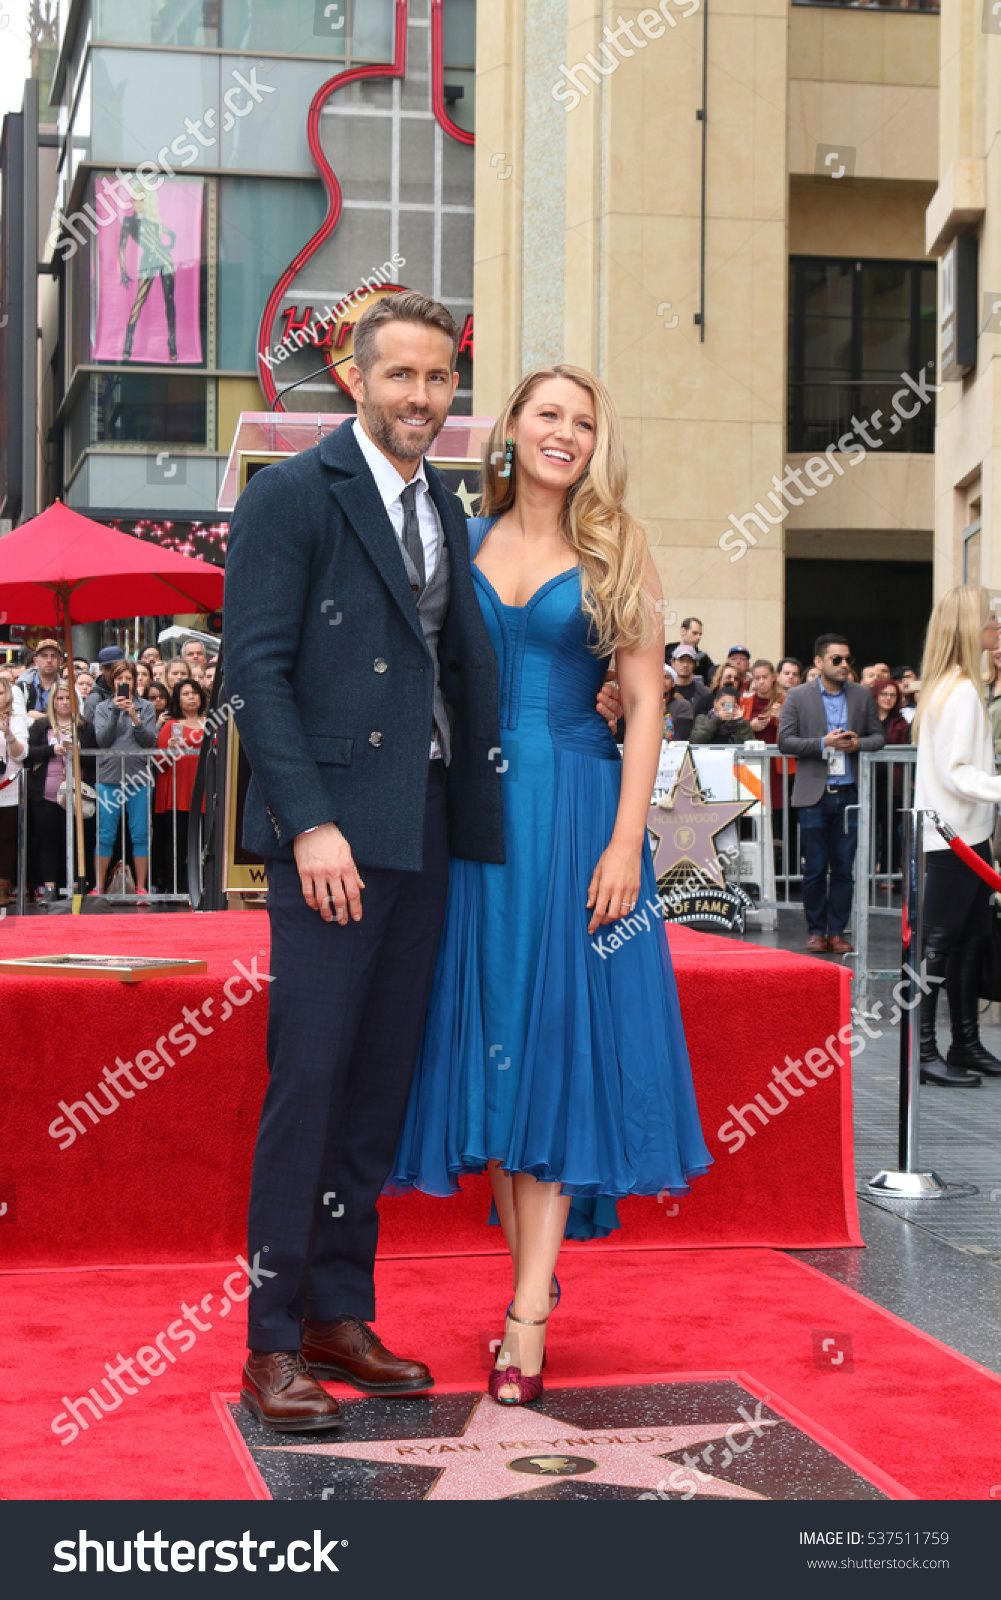 LOS ANGELES - DEC 15: Ryan Reynolds, Blake Lively at the Ryan Reynolds Hollywood Walk of Fame Star Ceremony at t #Ad , #Sponsored, #Blake#Reynolds#Hollywood#Lively